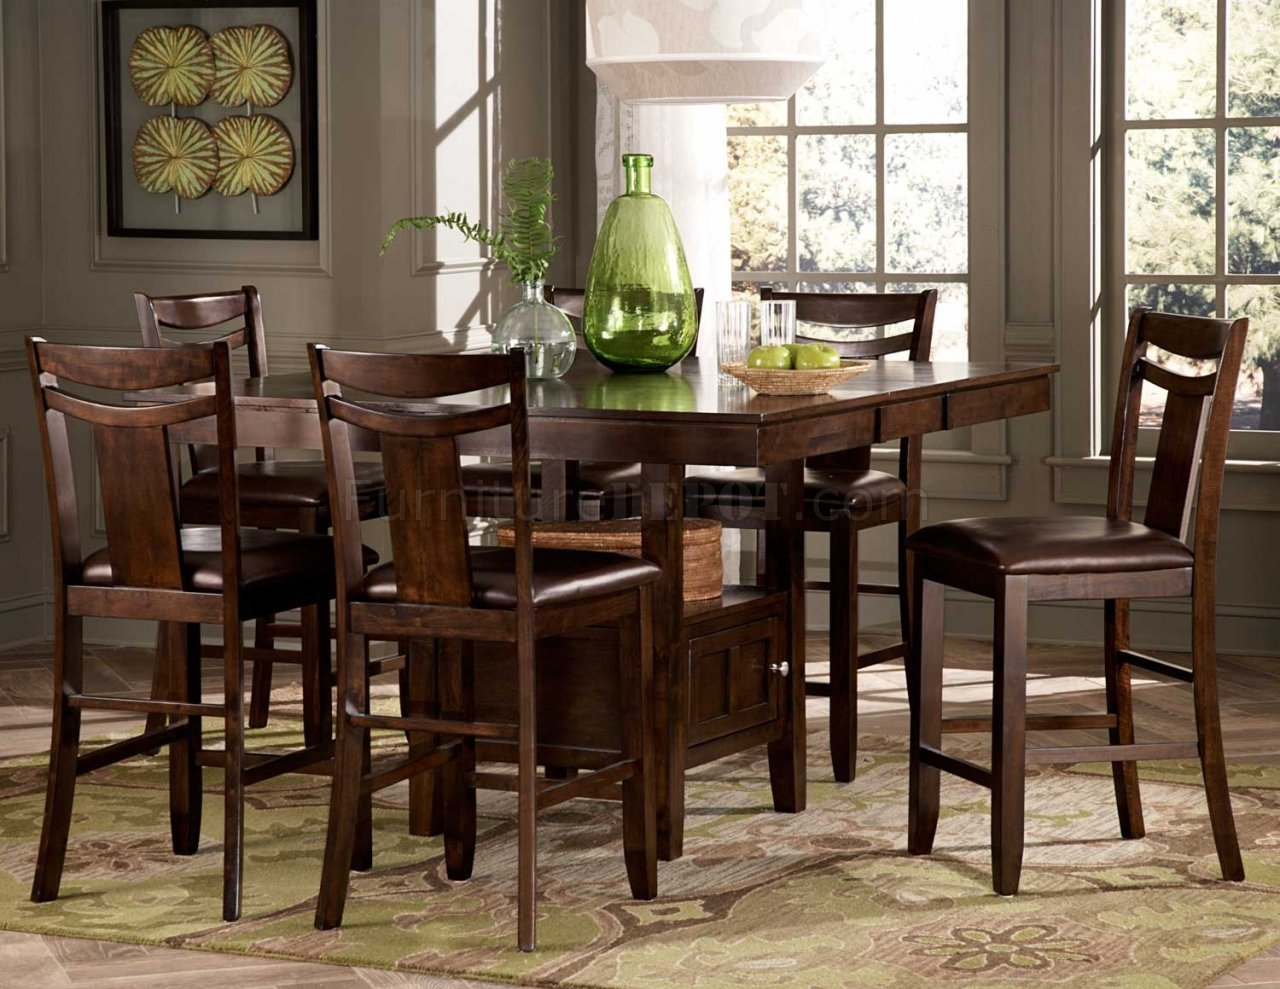 broome counter height dining 5pc set by homelegance p high kitchen table sets